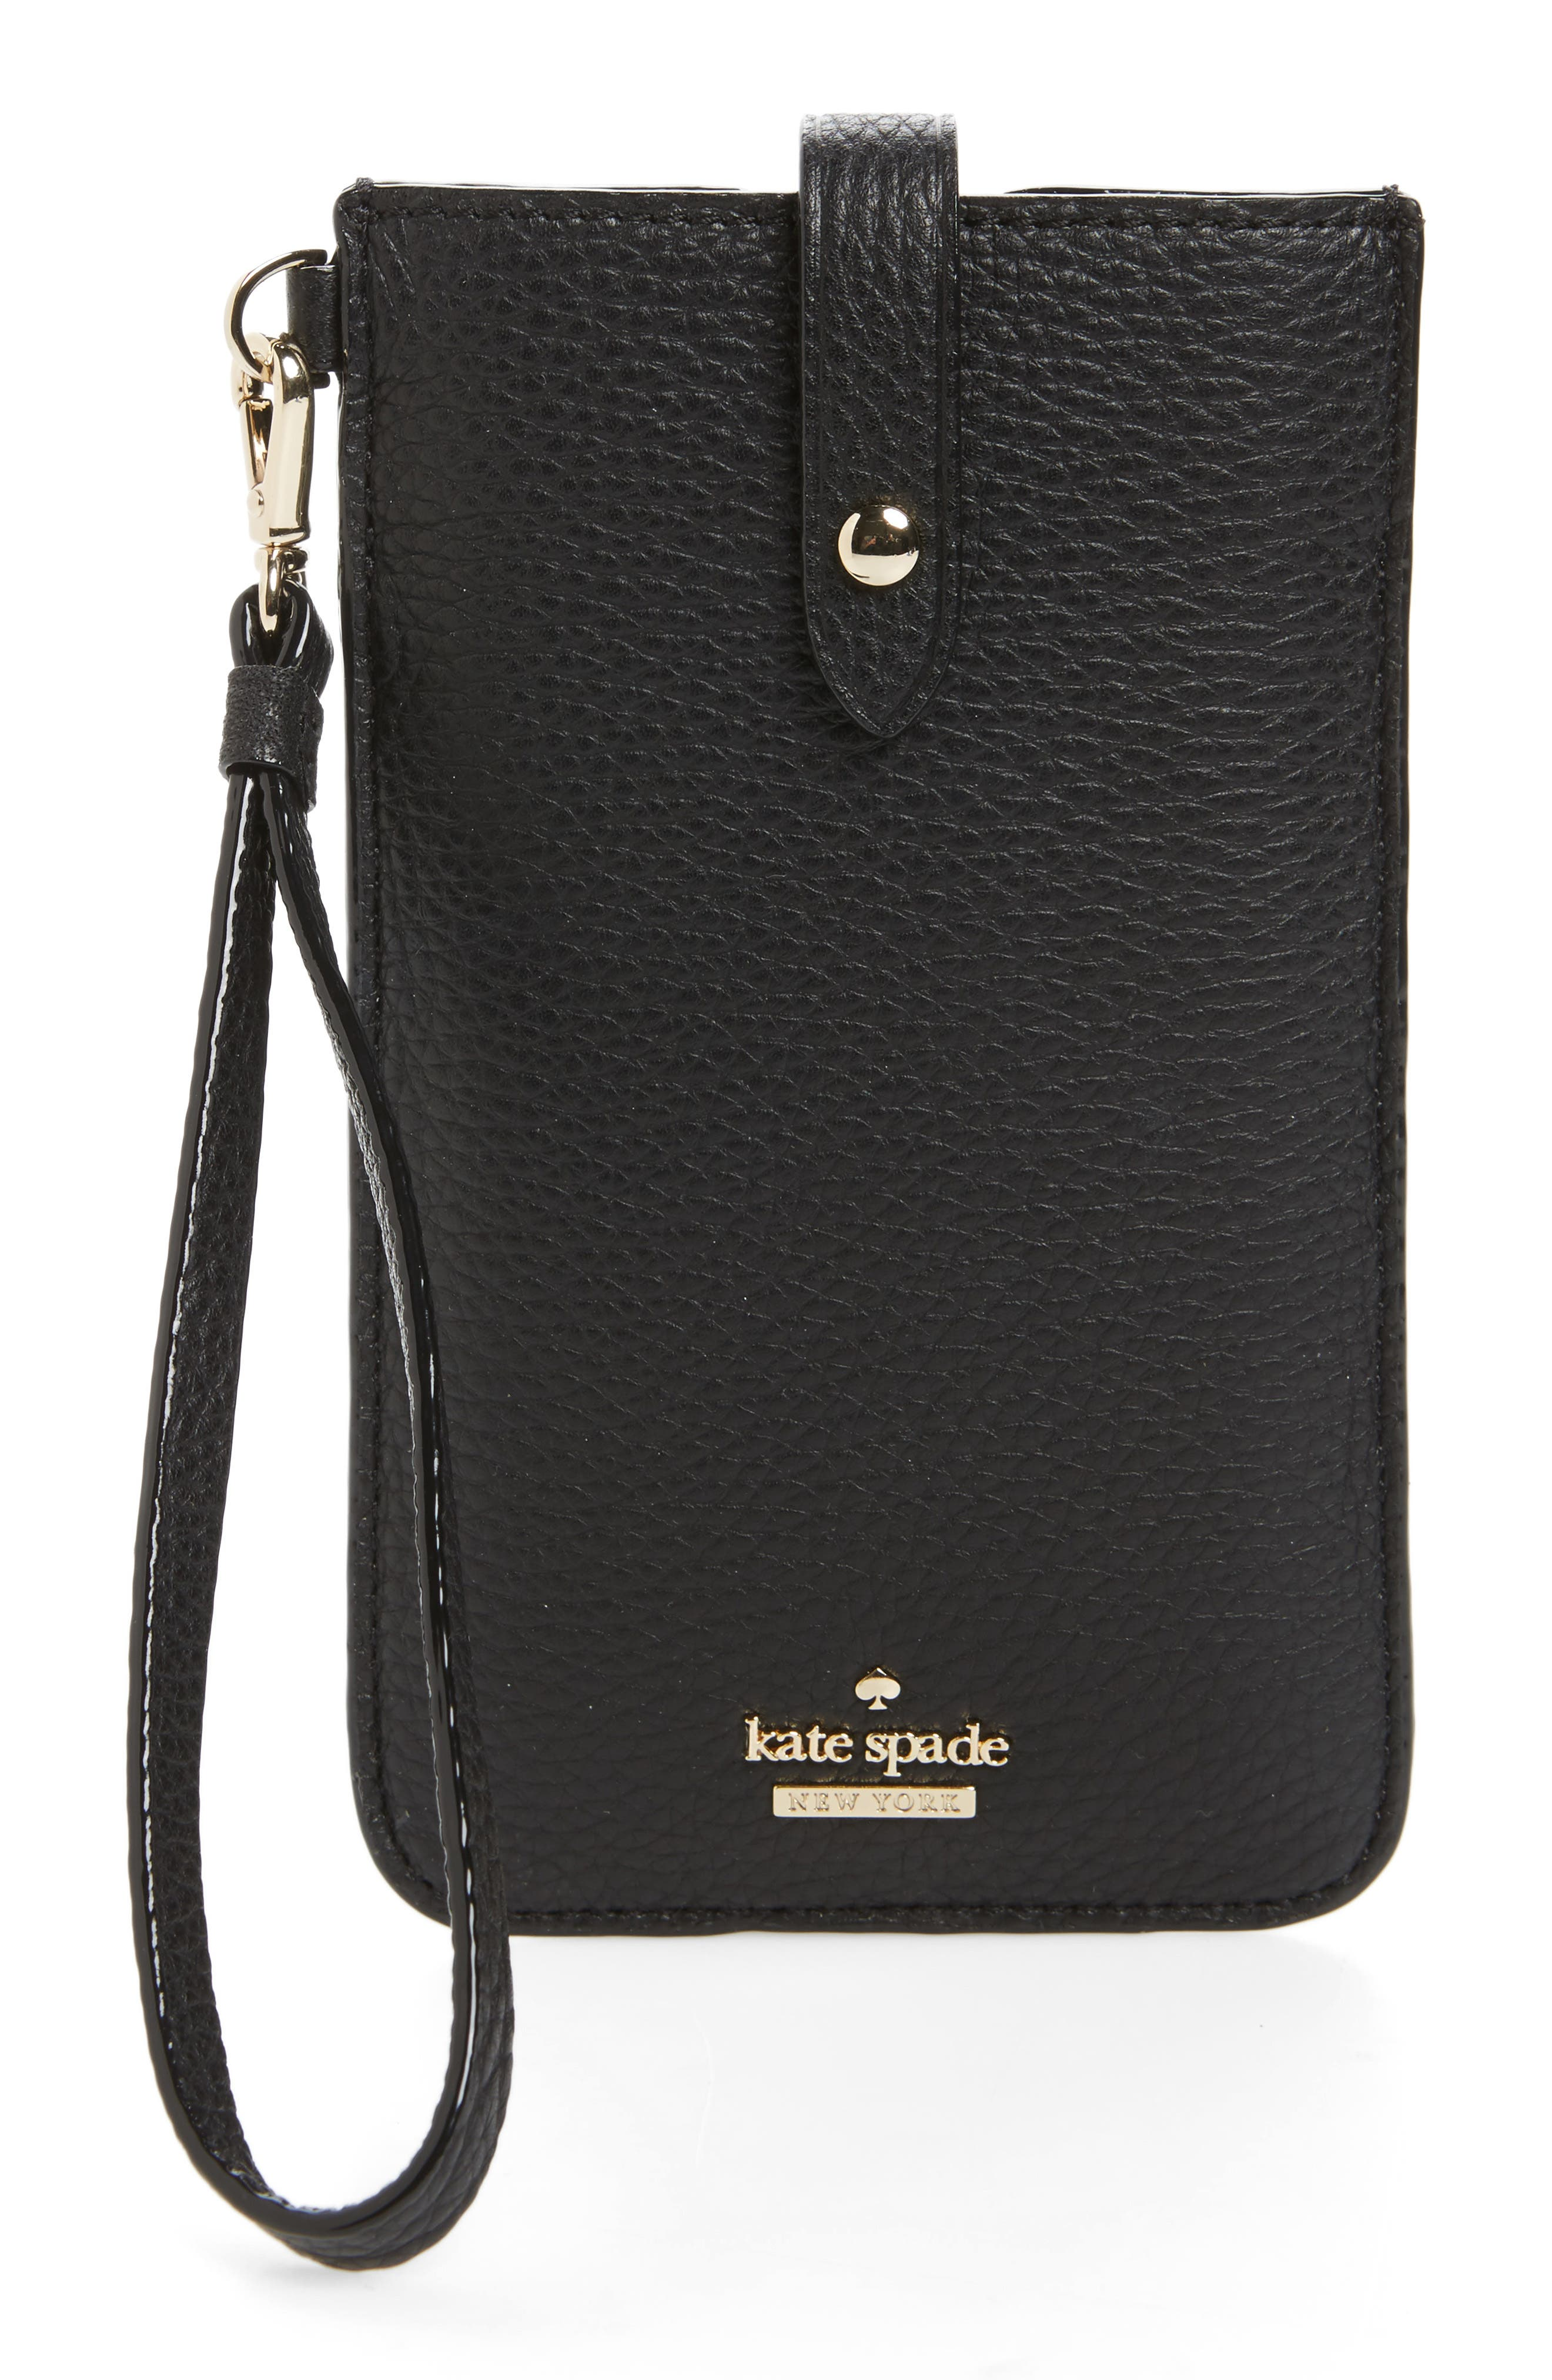 kate spade new york leather smartphone wristlet